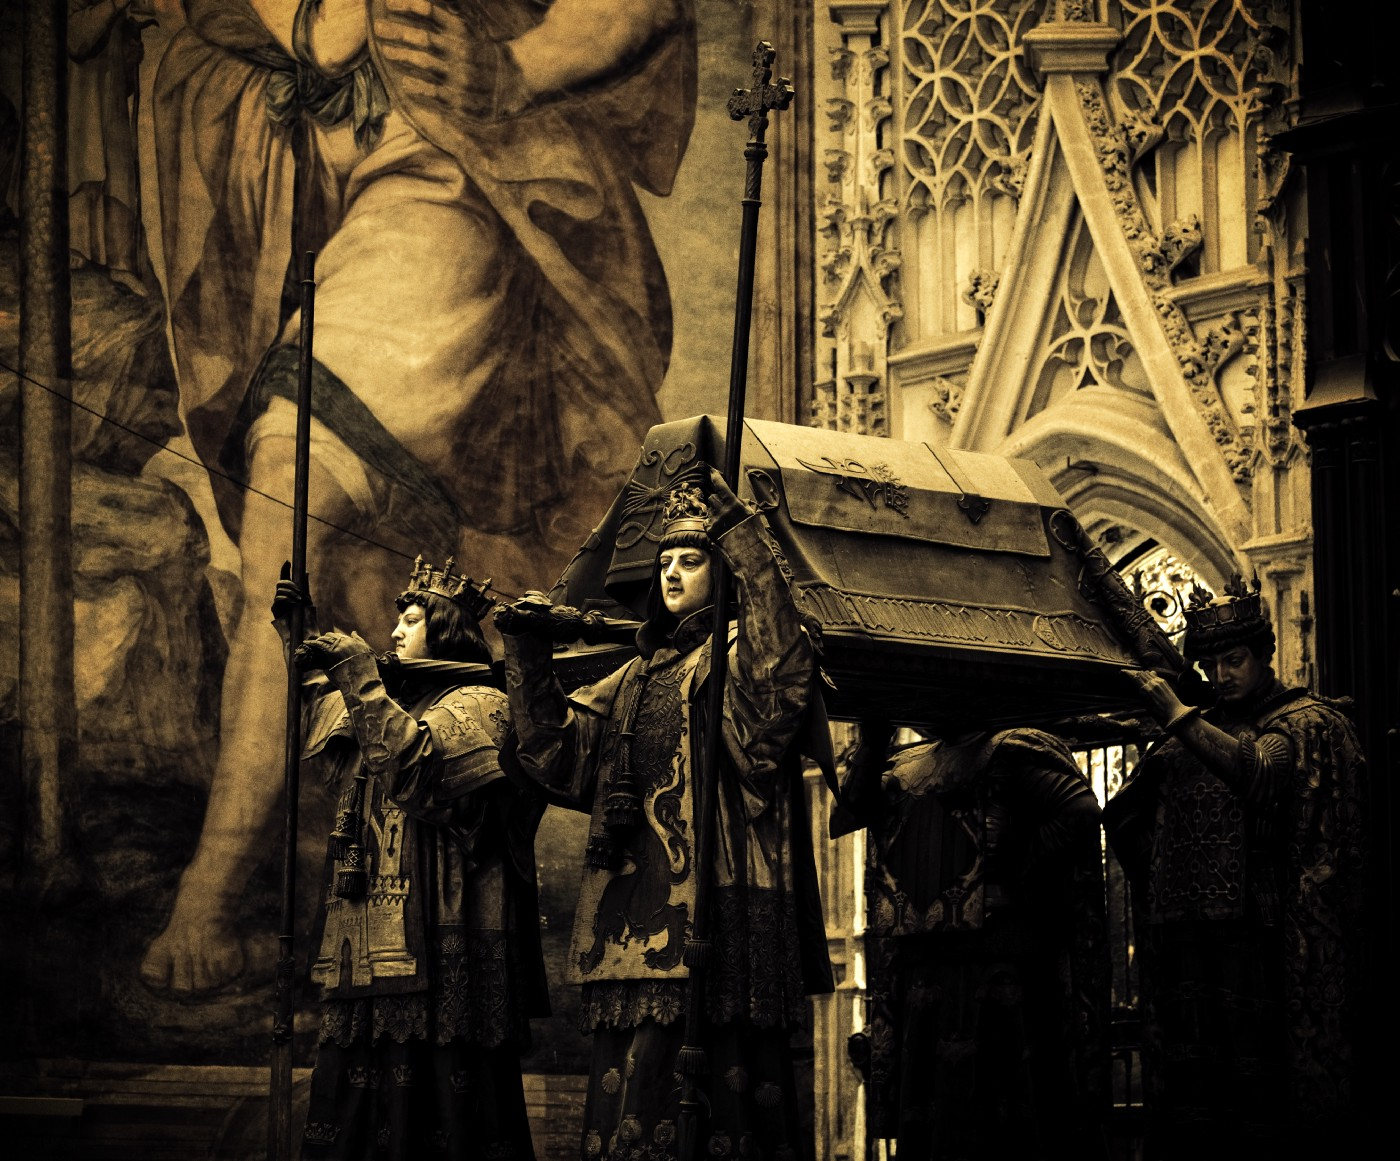 Christopher Columbus' sepulcher in the Cathedral of Seville, Spain.